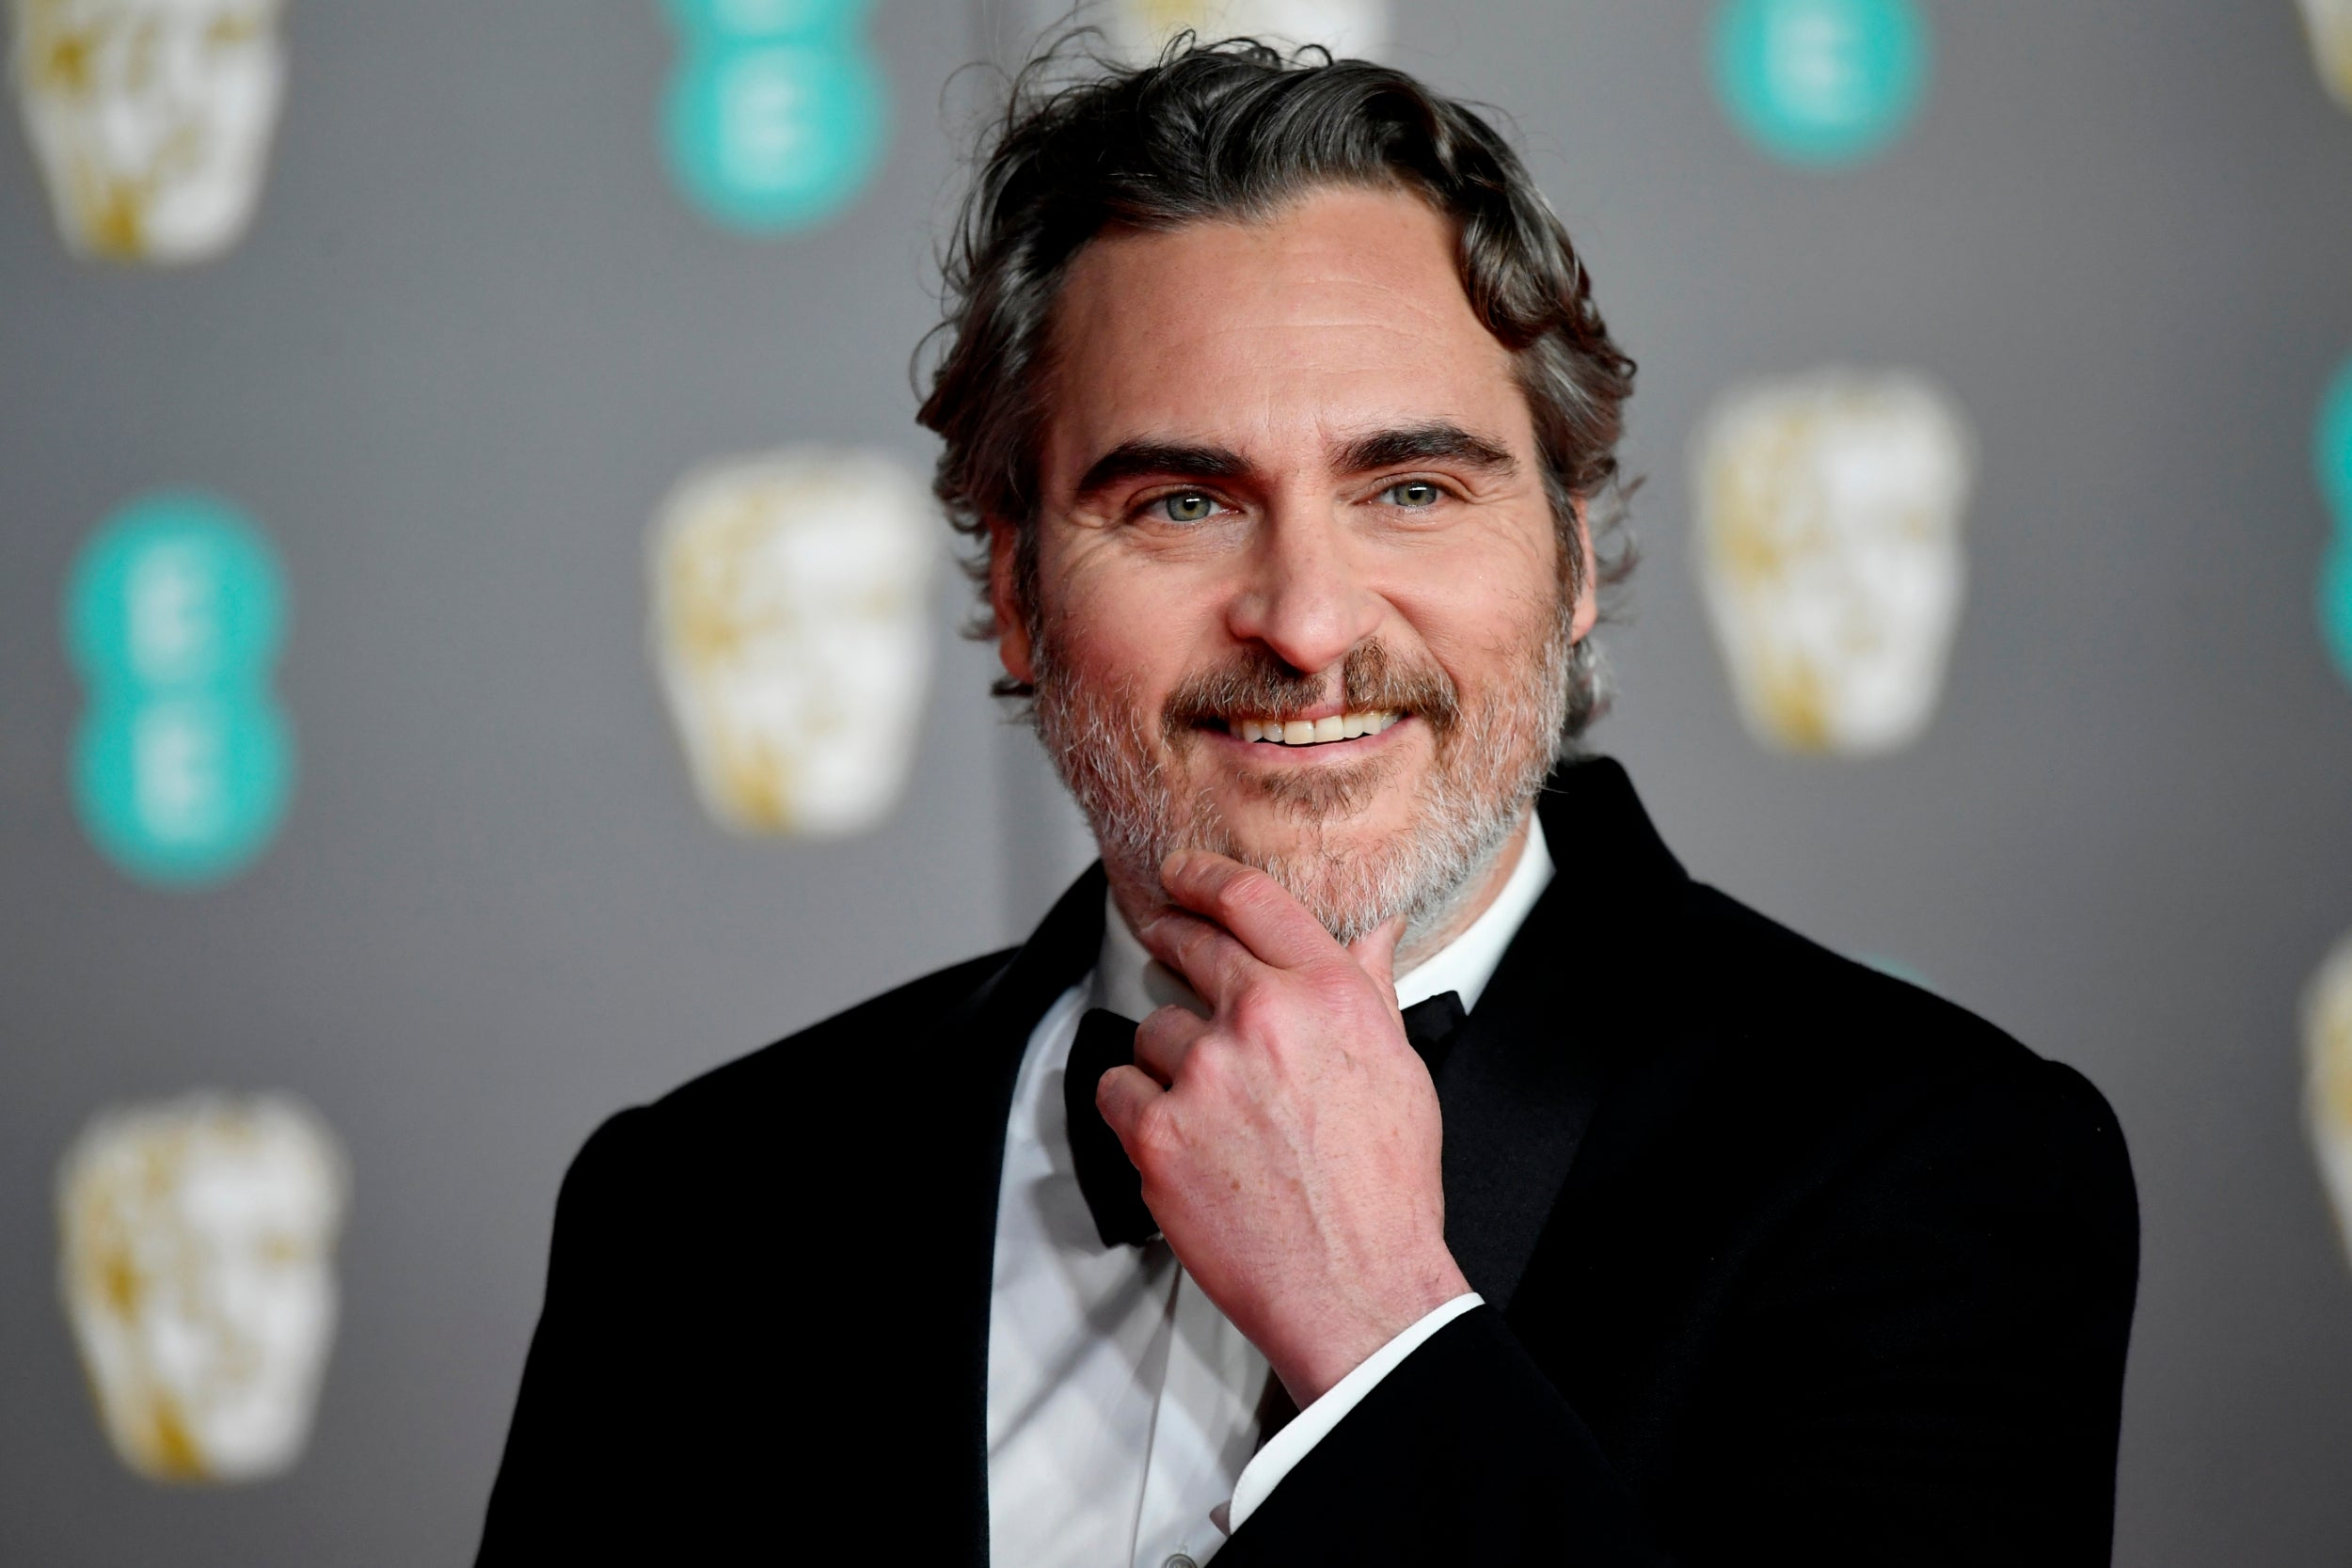 Baftas 2020: Diversity pledges and 3 other talking points from awards ceremony